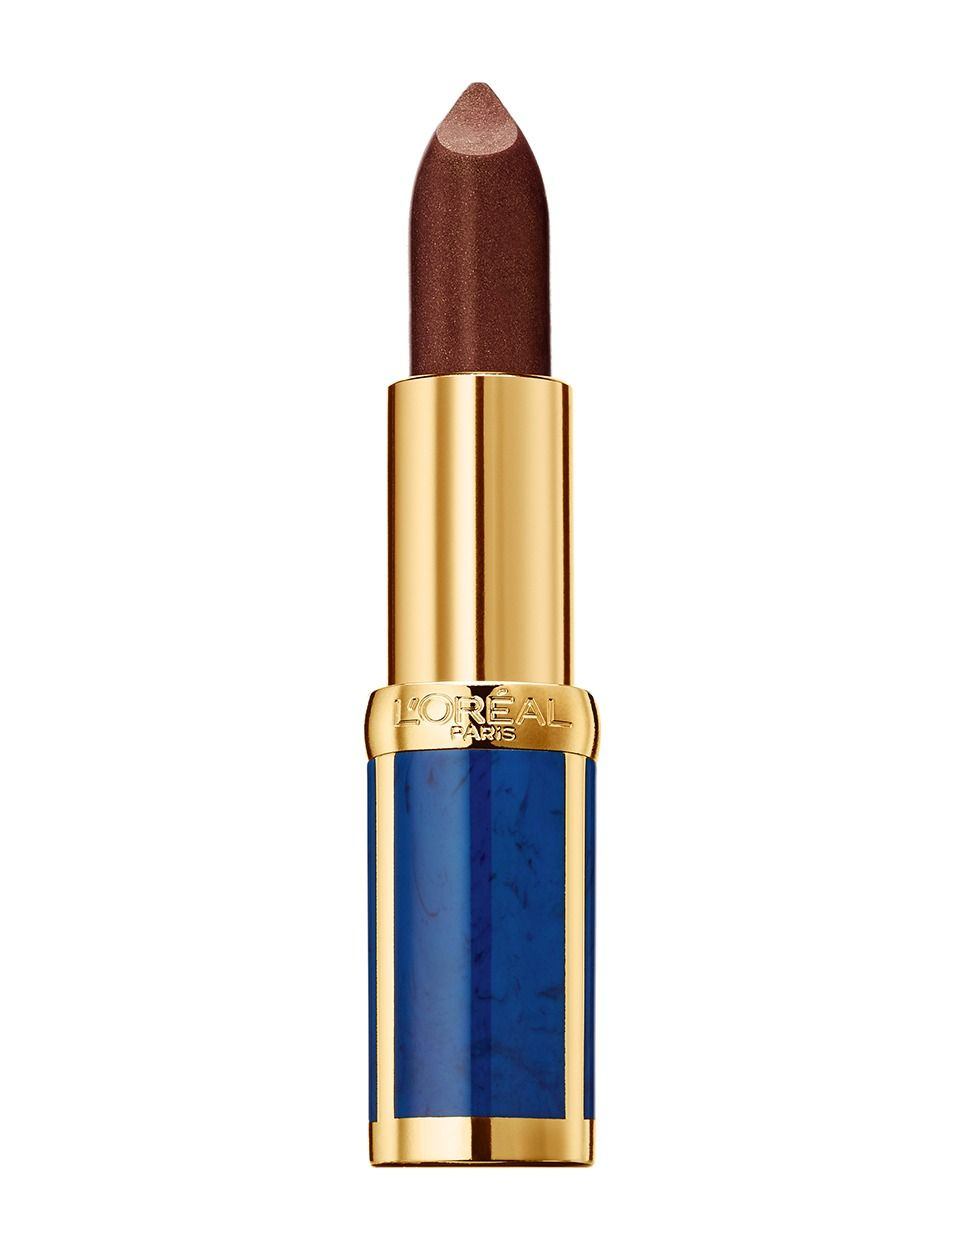 L'Oreal Paris Color Riche Lipstick Balmain Limited Edition 650 Power